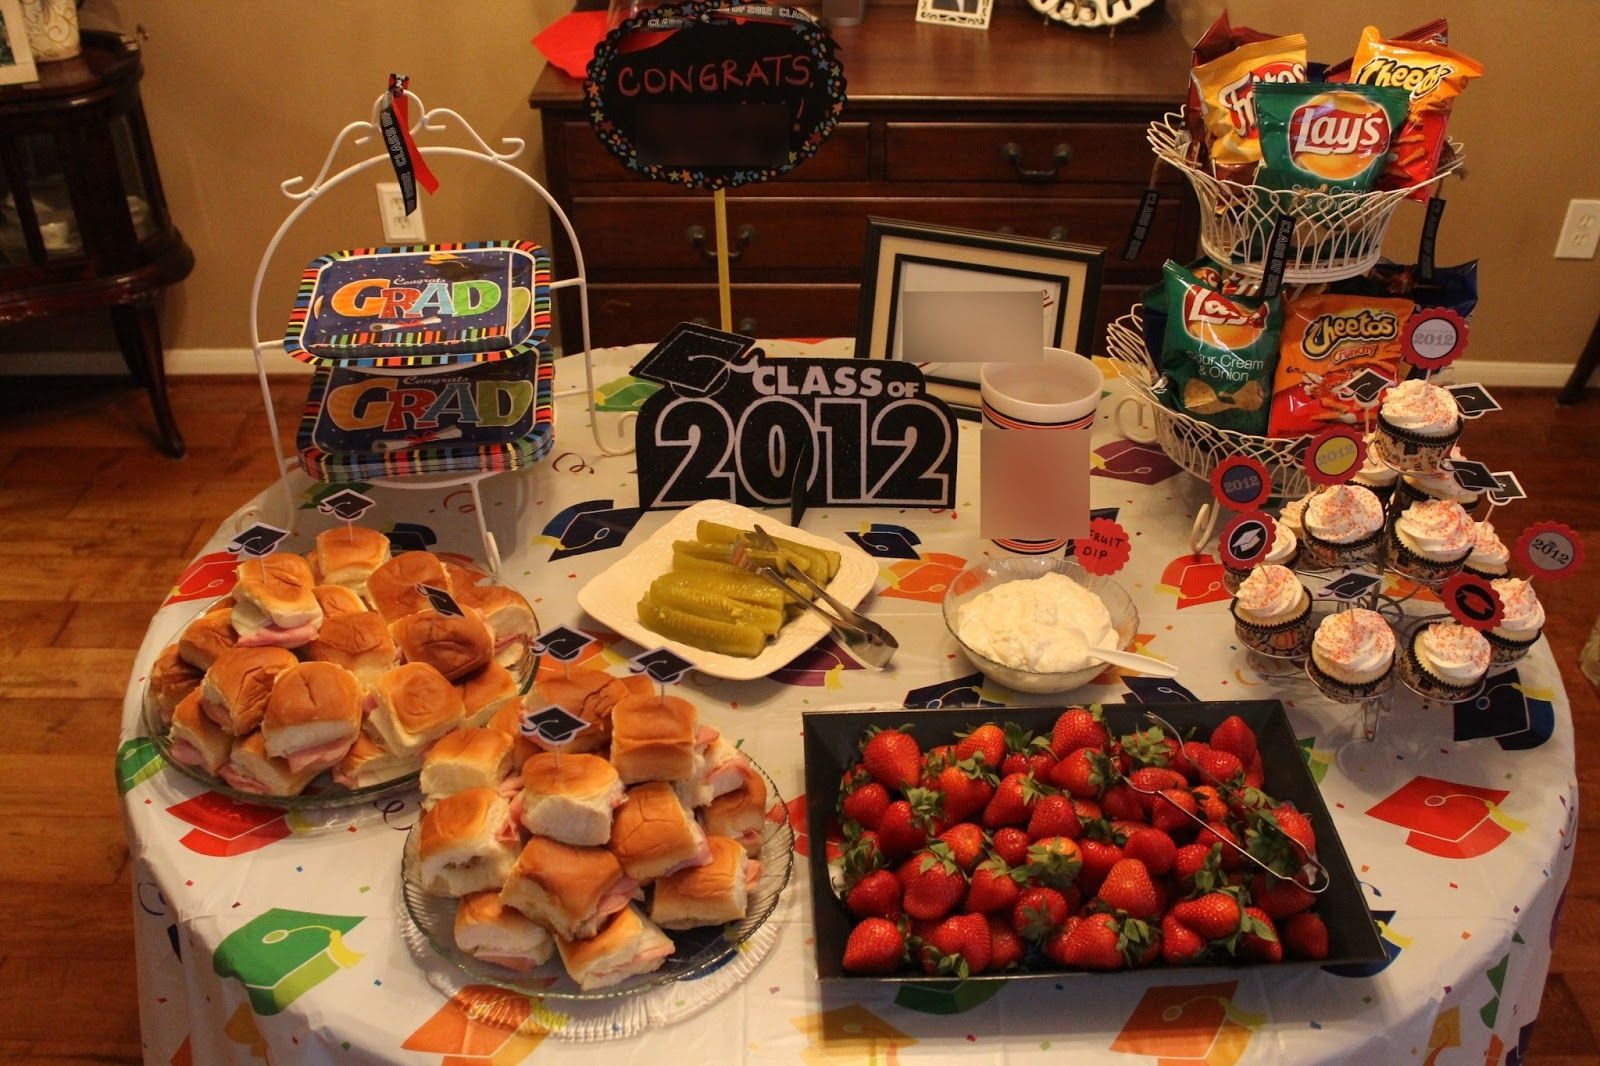 Inexpensive Graduation Party Food Ideas  Graduation Party Gift Ideas